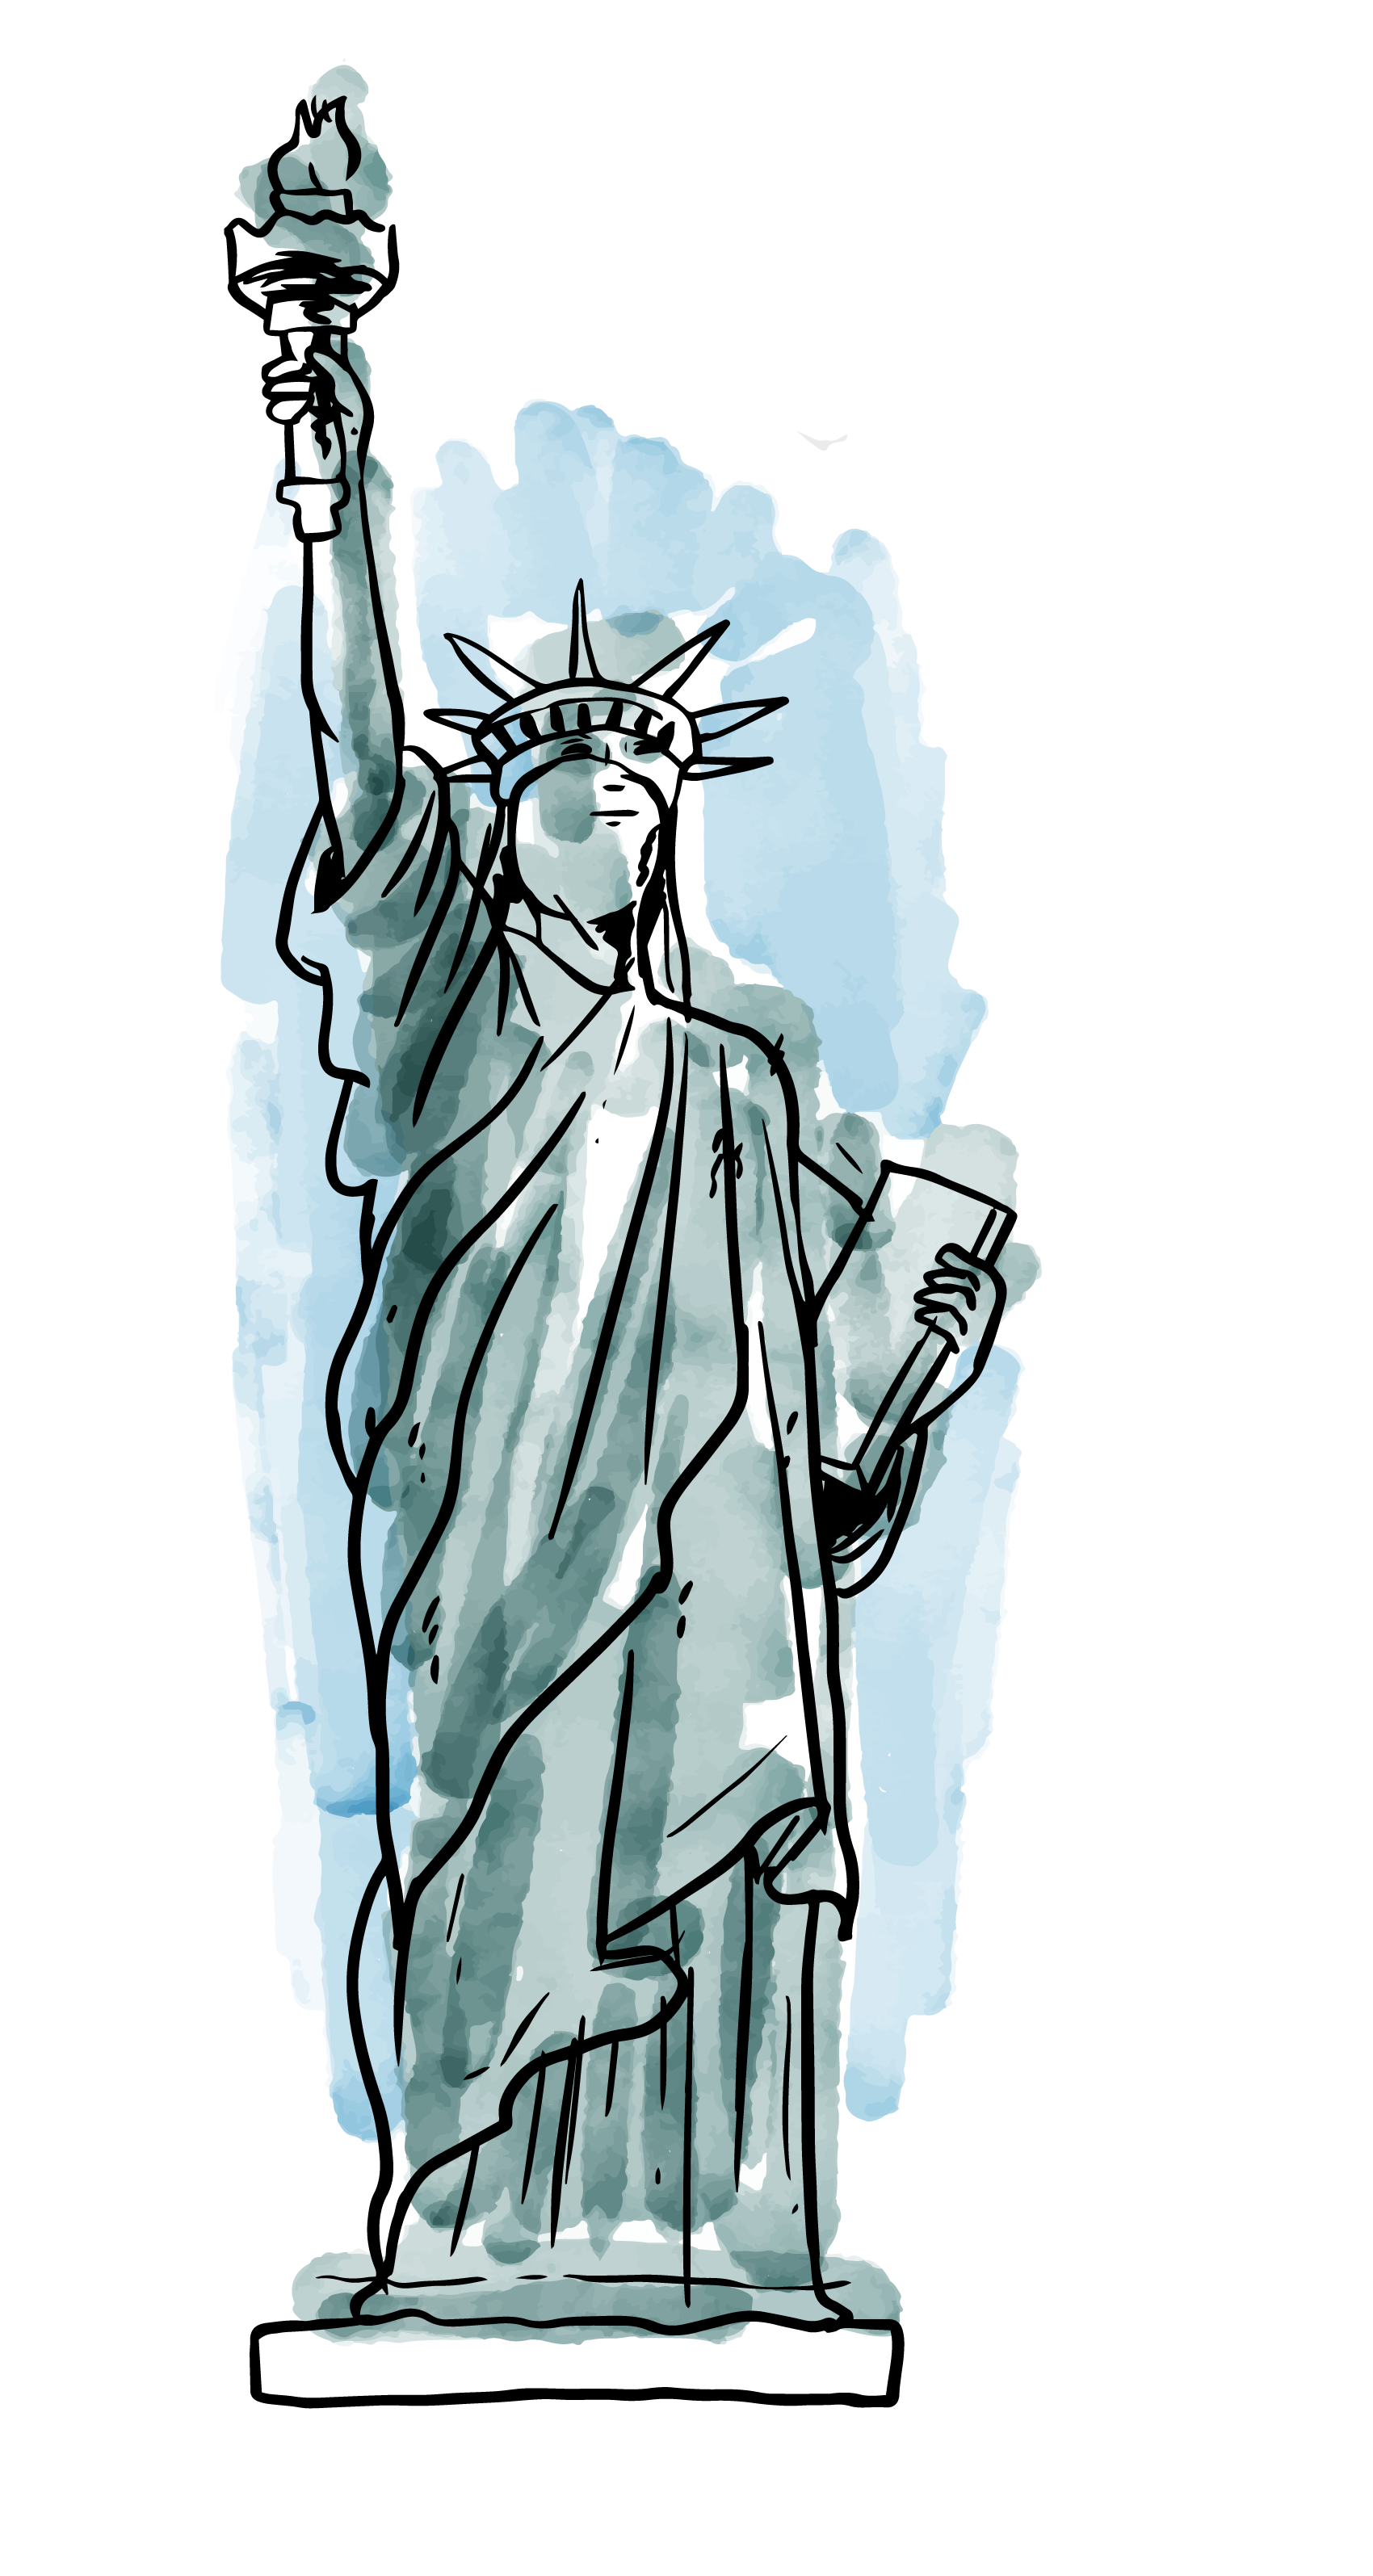 Statue of liberty apple png. Transprent free download art